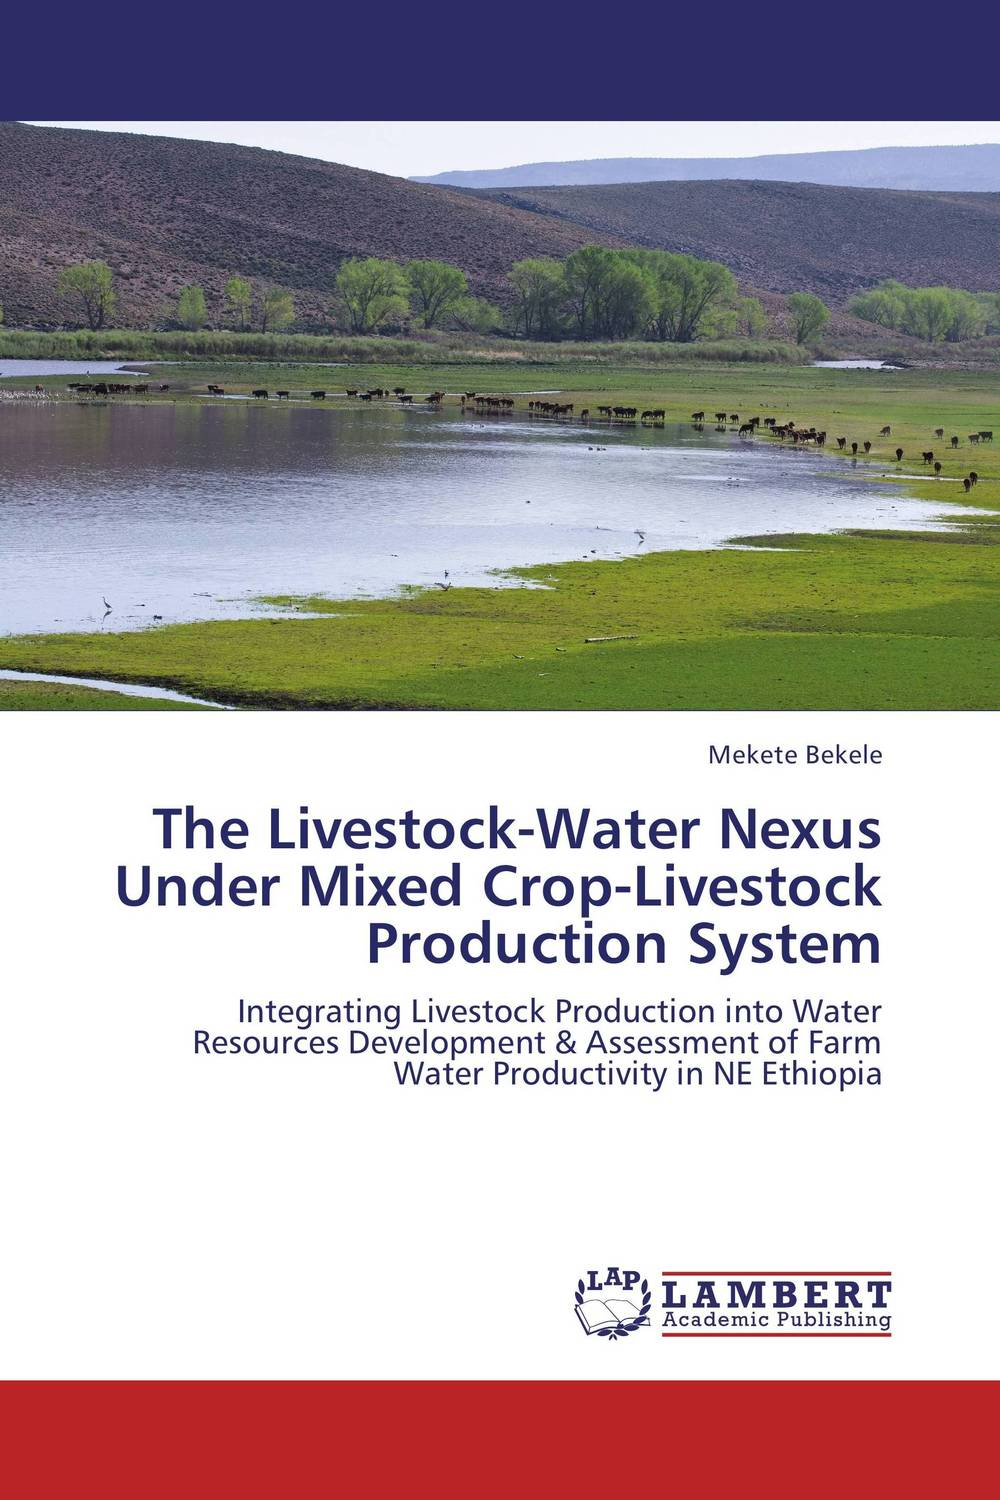 The Livestock-Water Nexus Under Mixed Crop-Livestock Production System сито tescoma presto цвет красный диаметр 17 см